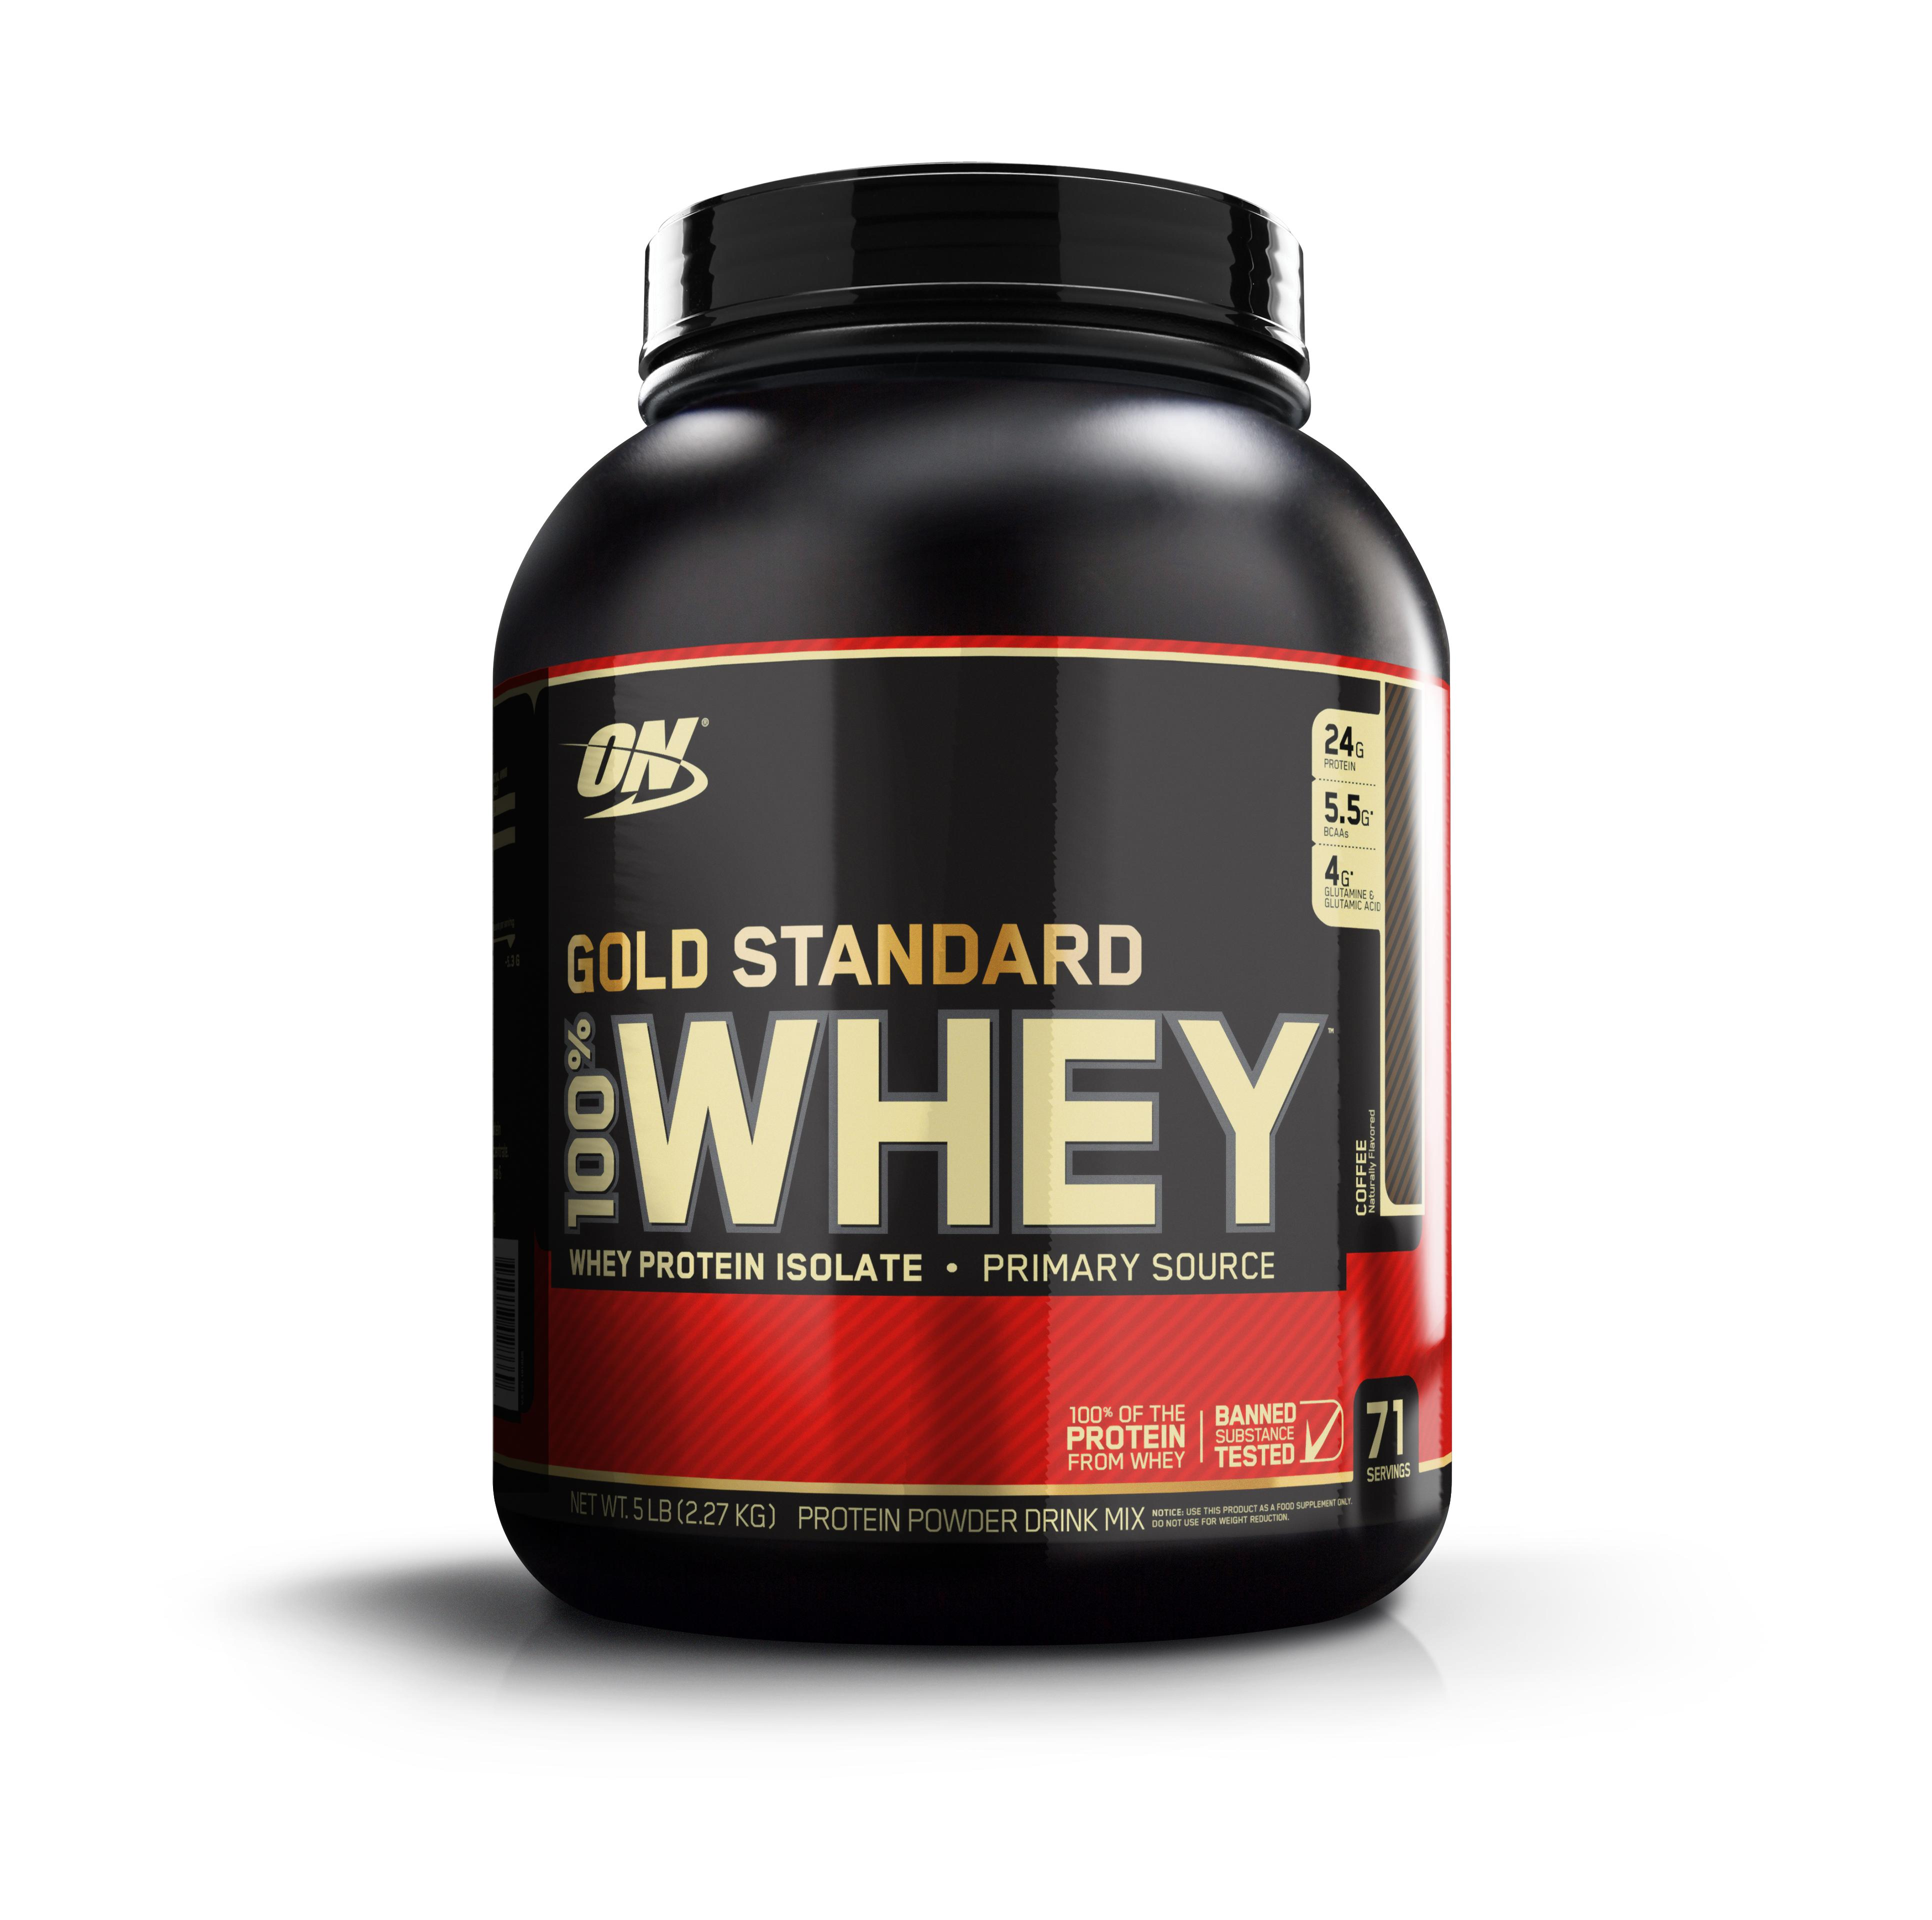 Optimum Nutrition Gold Standard 100% Whey Protein Powder, Coffee, 24g Protein, 5 Lb